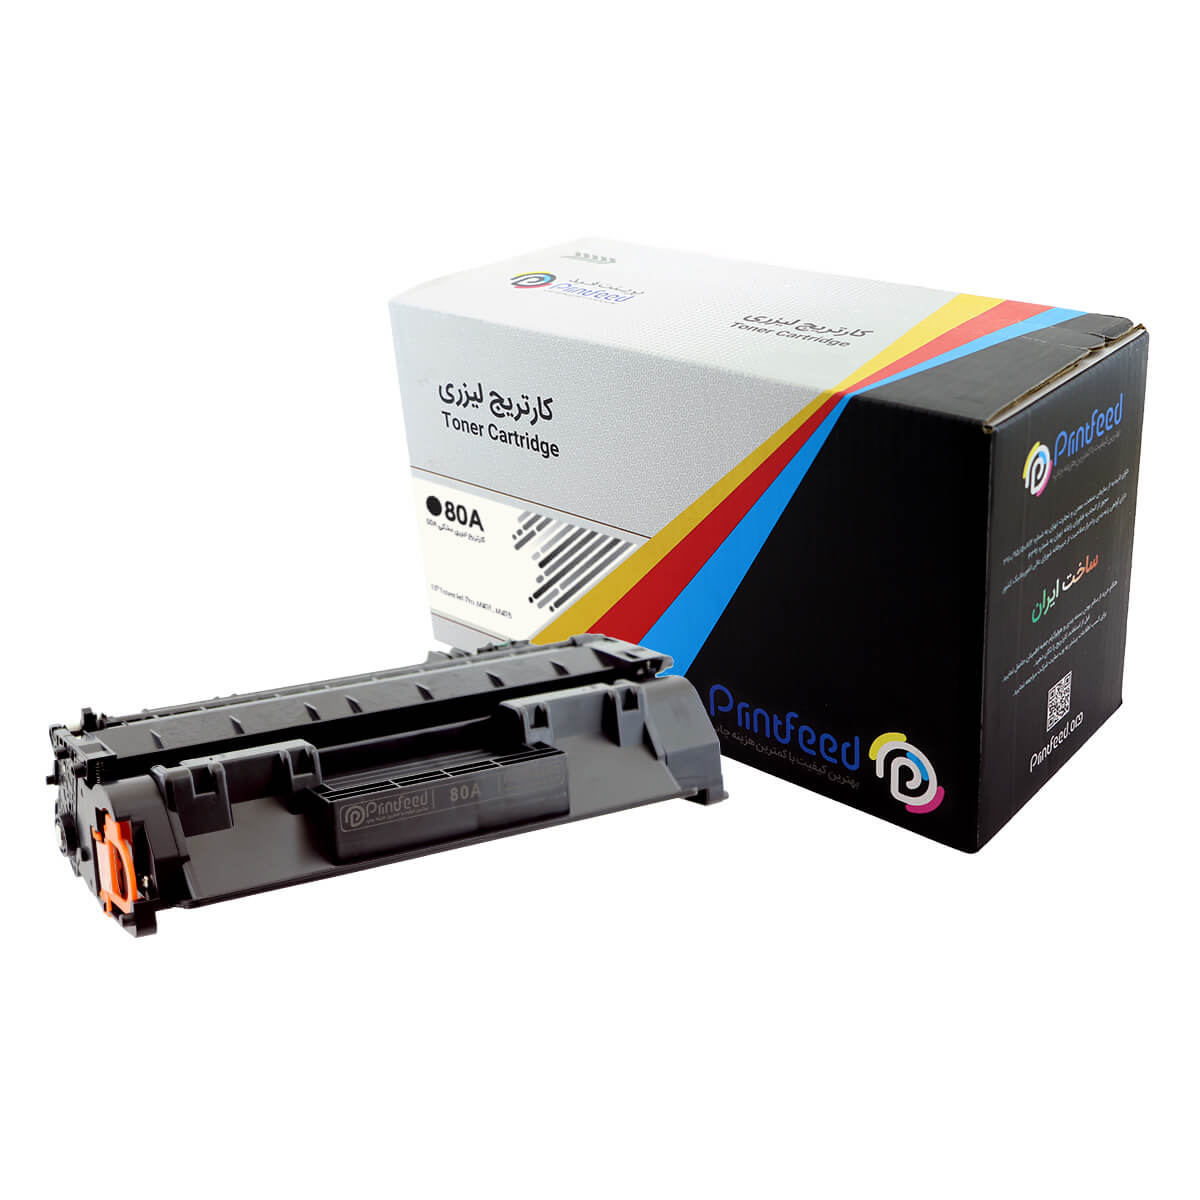 HP laserjet 80A Black  compatible Cartridge